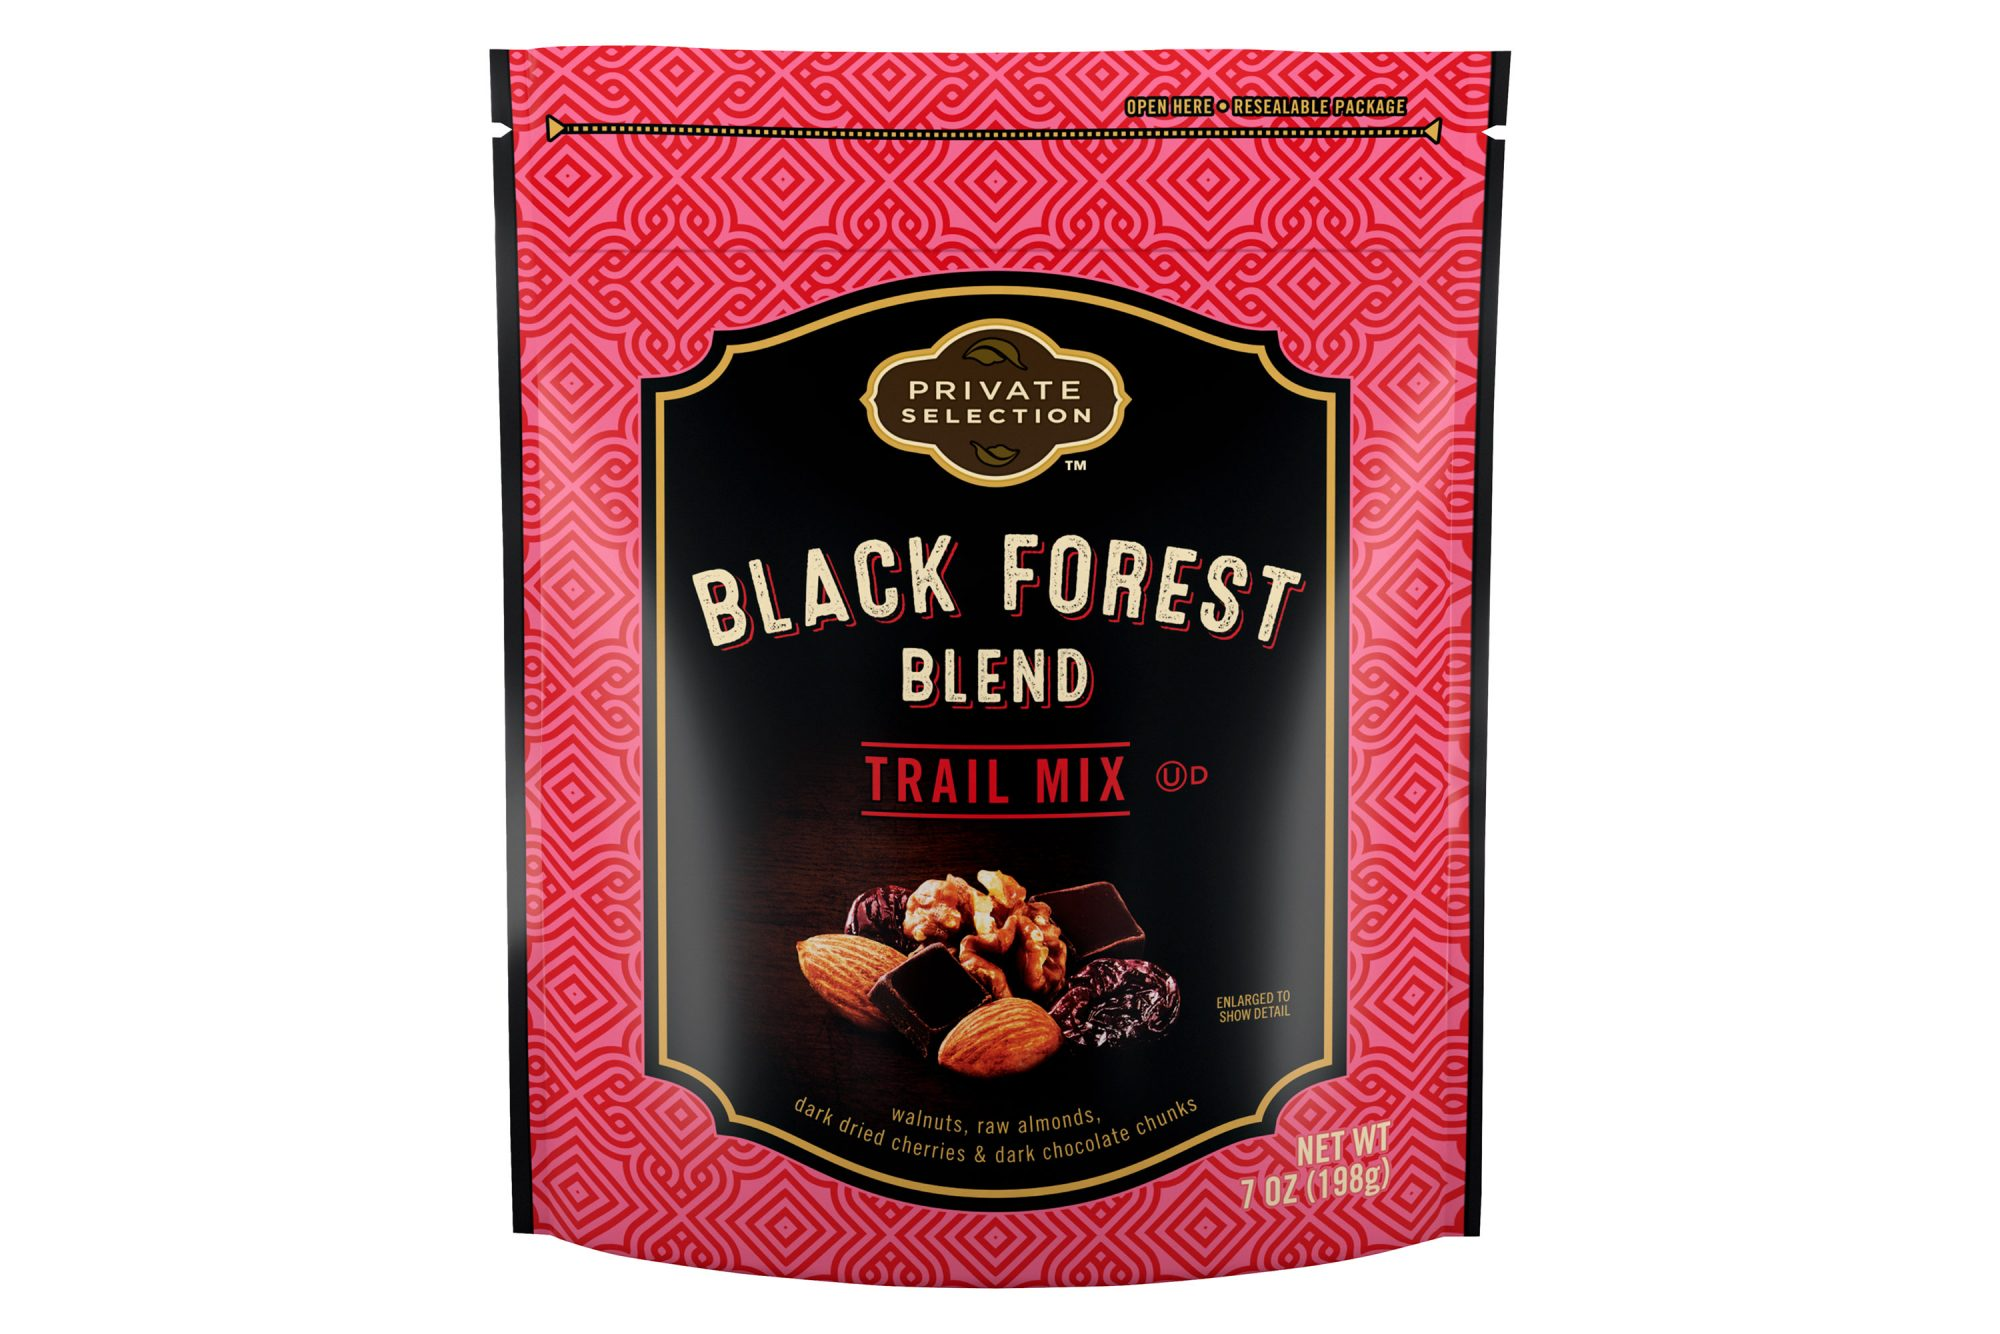 Private Selection Black Forest Blend Trail Mix